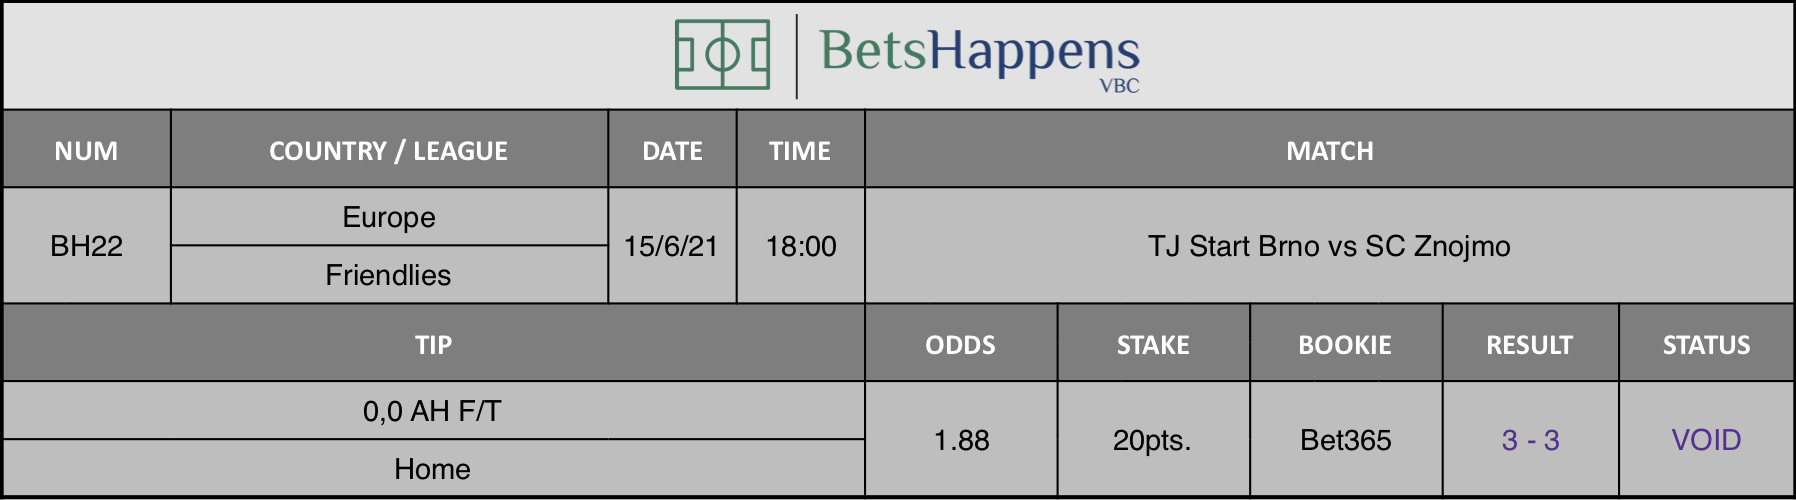 Results of our tip for the TJ Start Brno vs SC Znojmo Match 0,0 AH F/T Home is recommended.